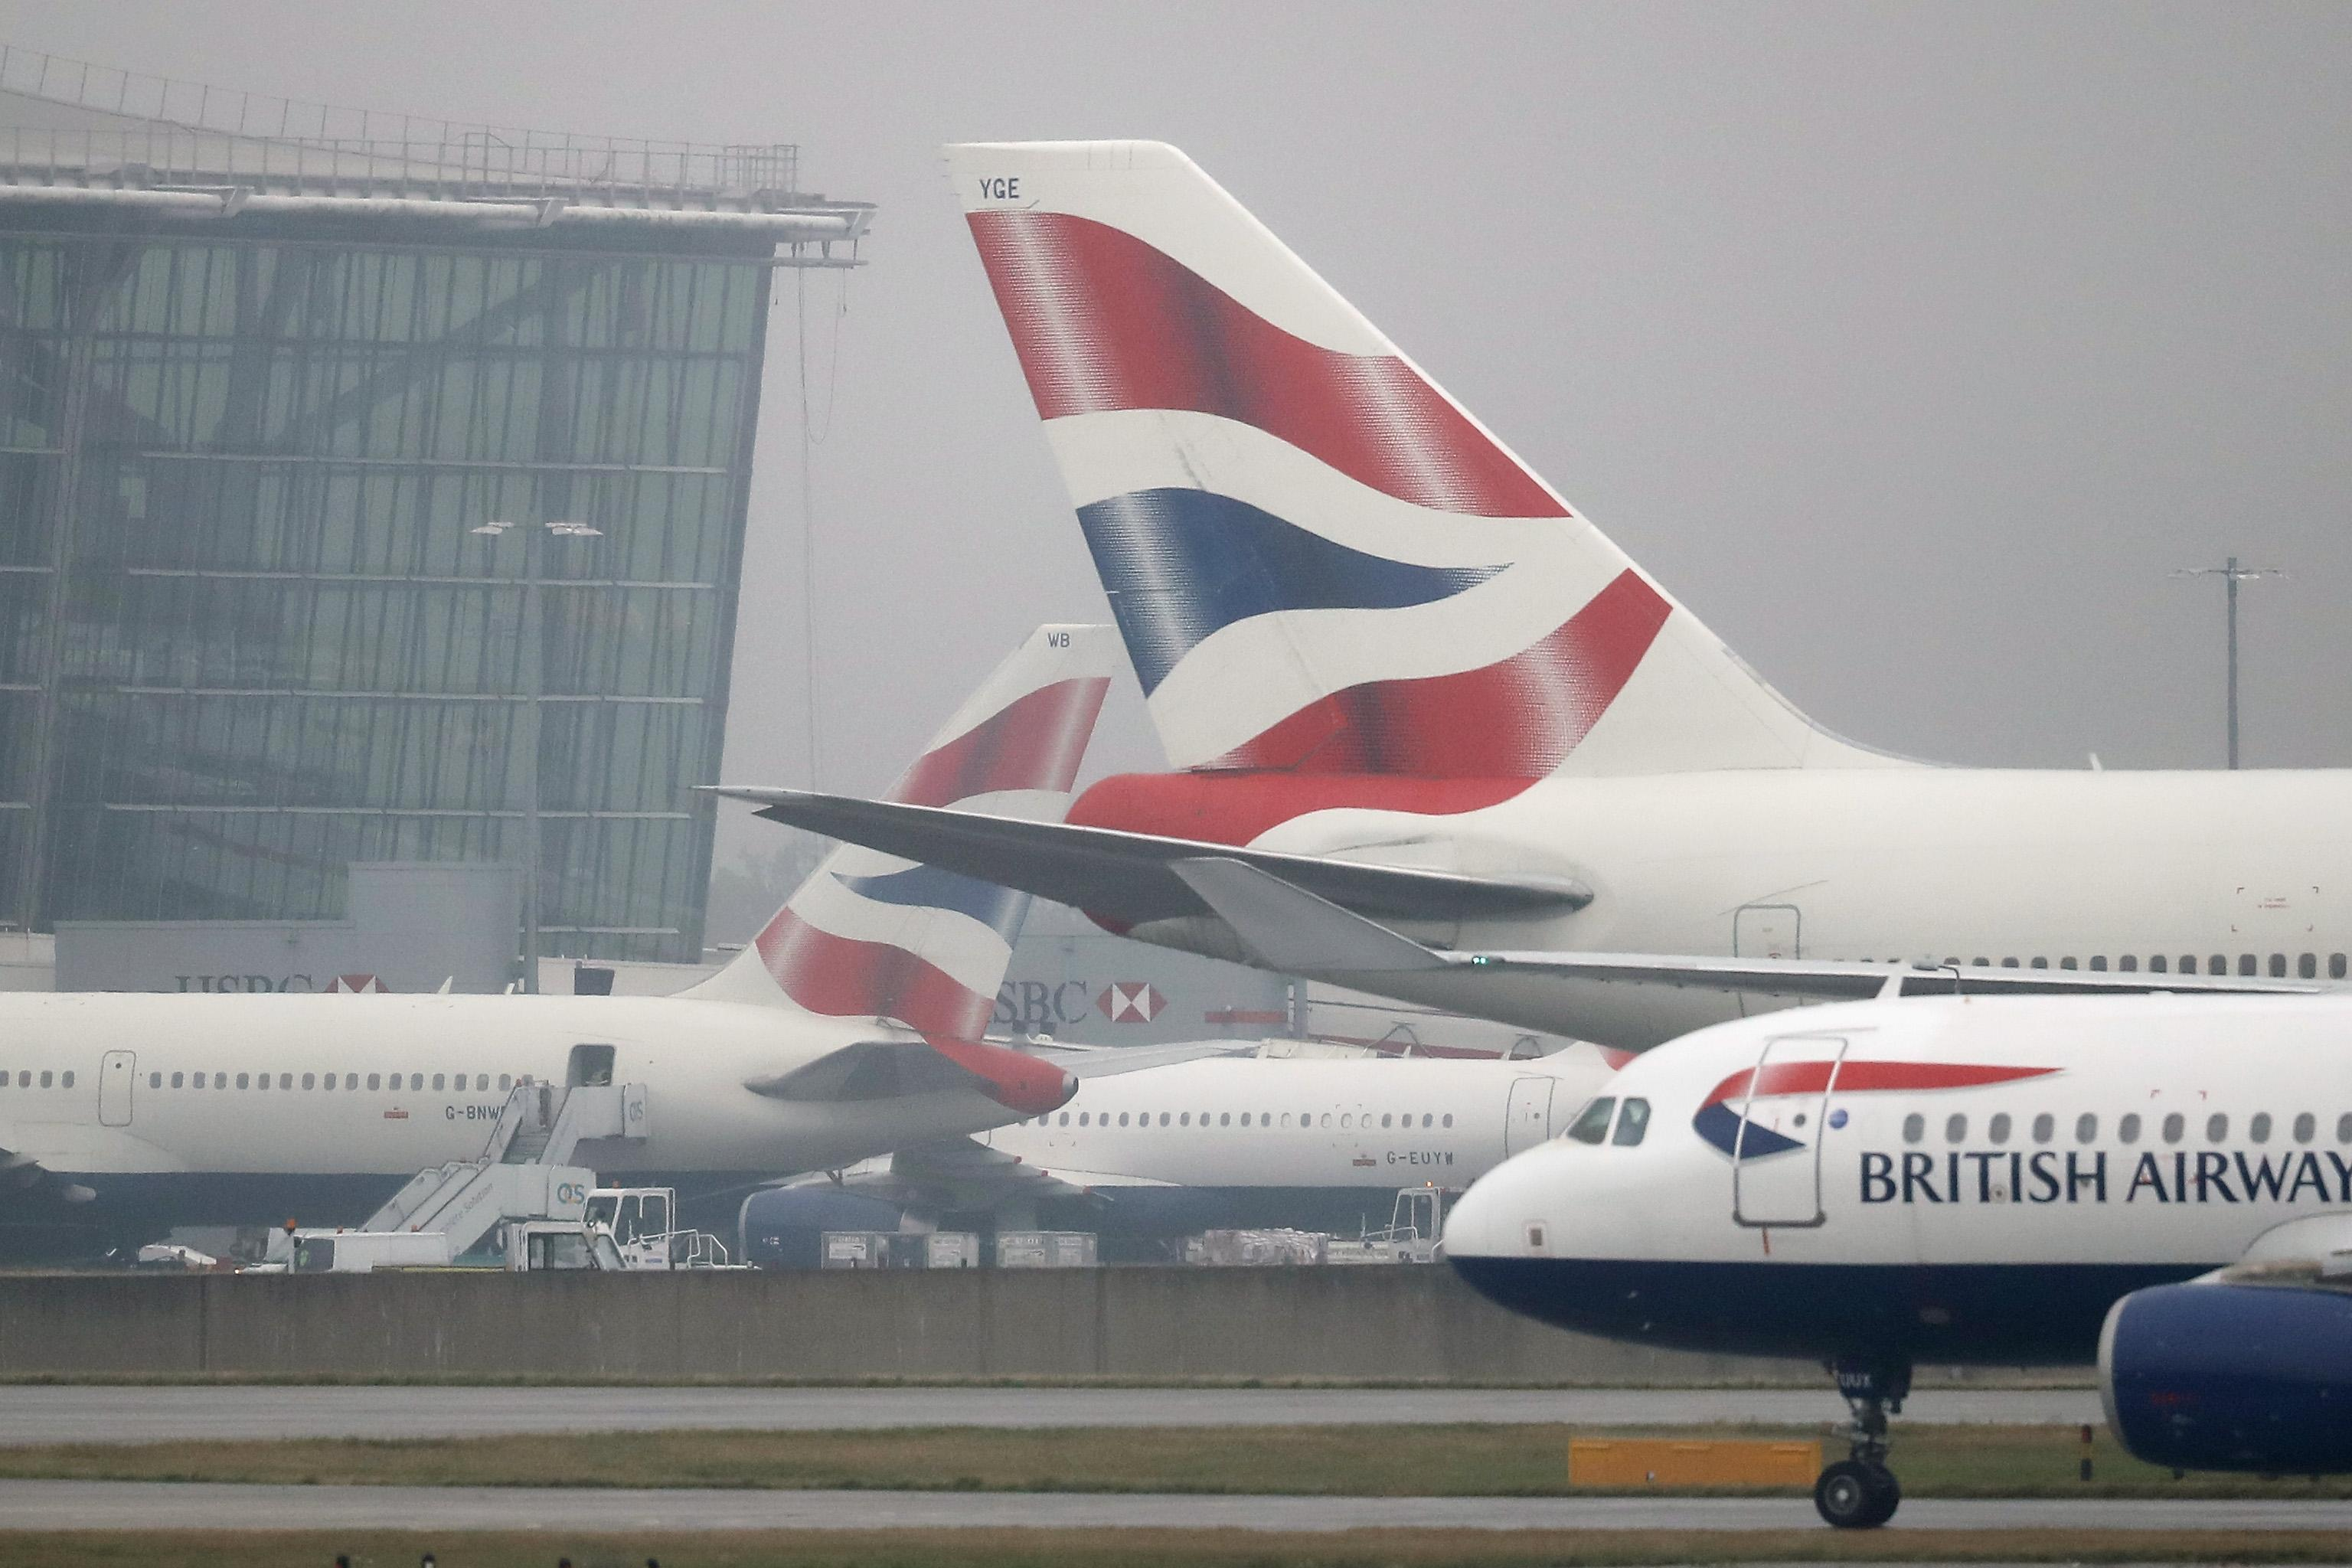 London Tourism 2016: Heathrow Airport Runway Expansion To Bring More Visitors, Jobs, Trade To UK